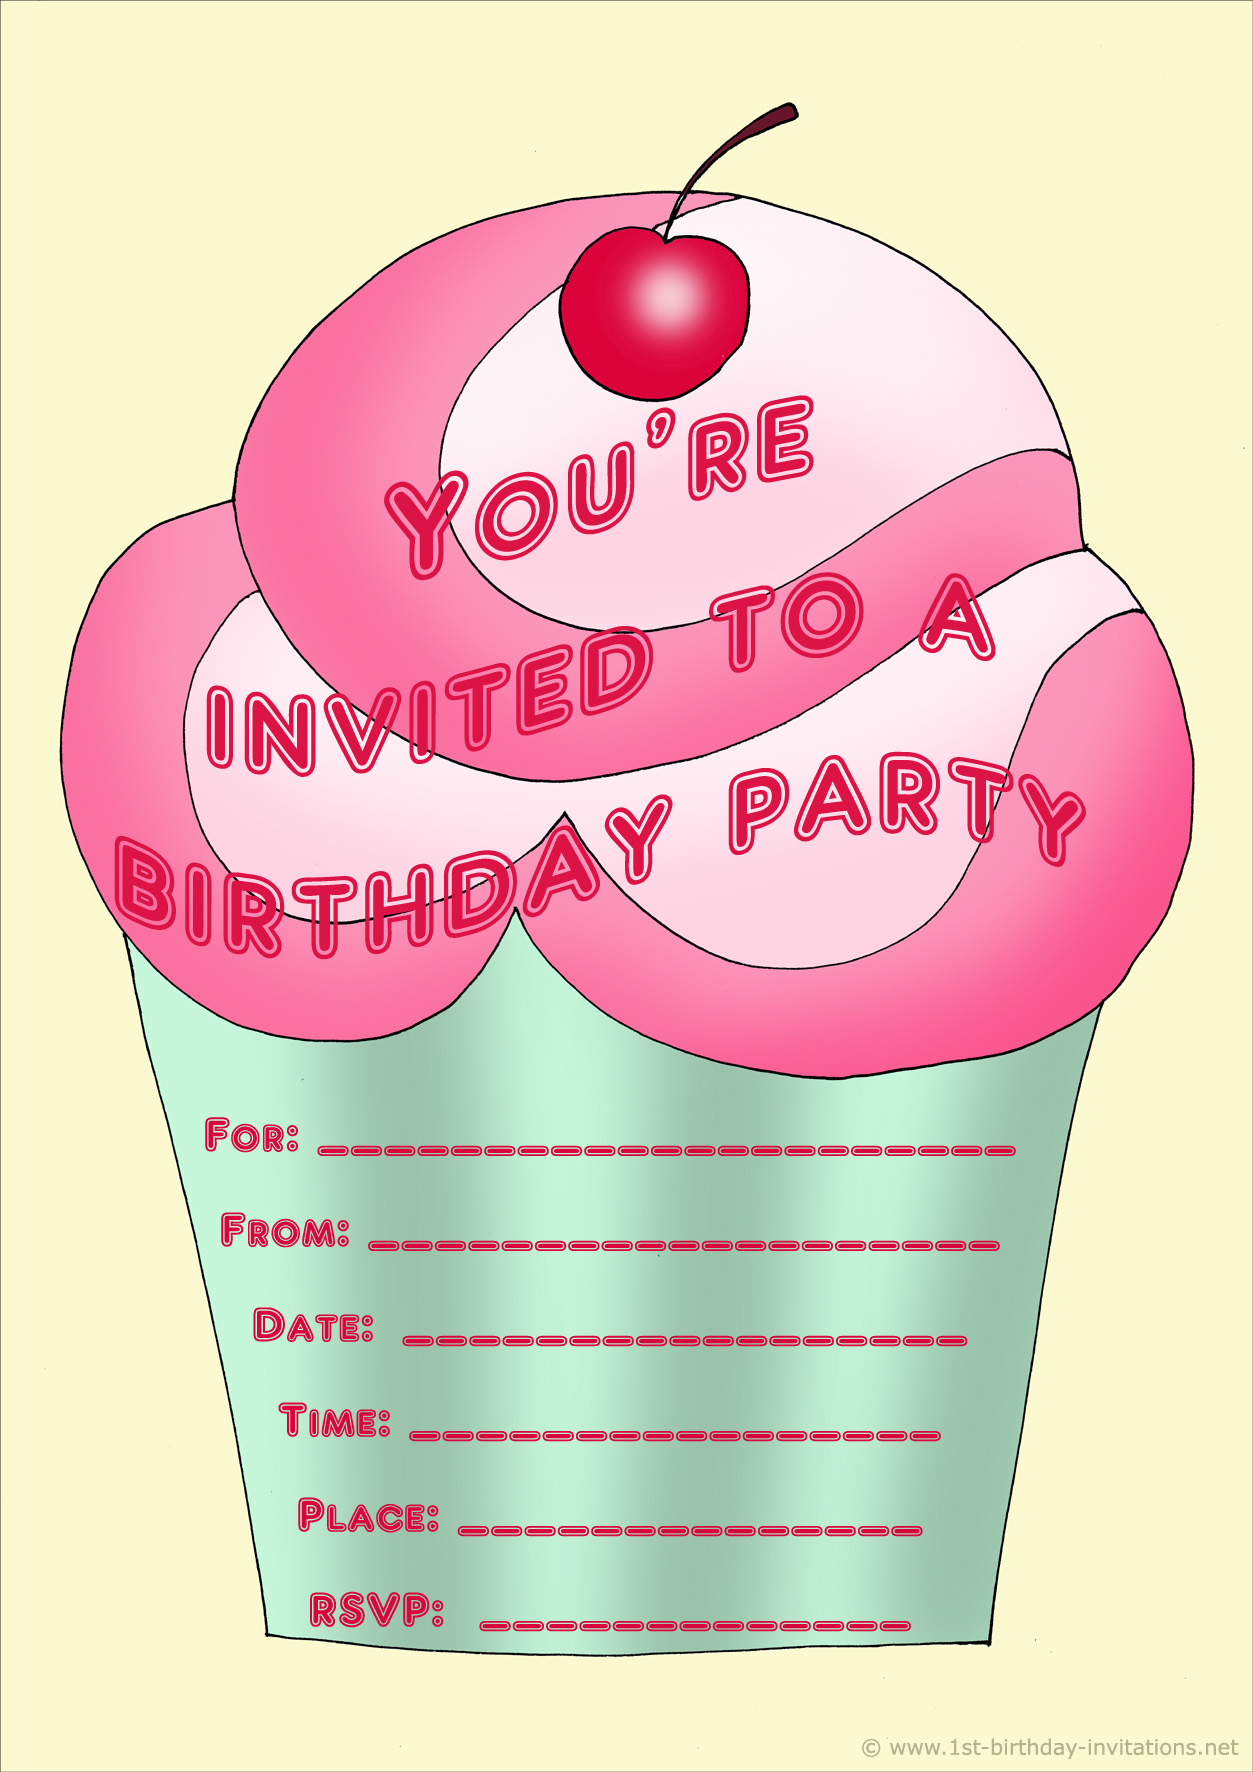 cupcake birthday invitation template ; cupcake-birthday-invitations-for-simple-invitations-of-your-Birthday-Invitation-Templates-using-amazing-design-ideas-18